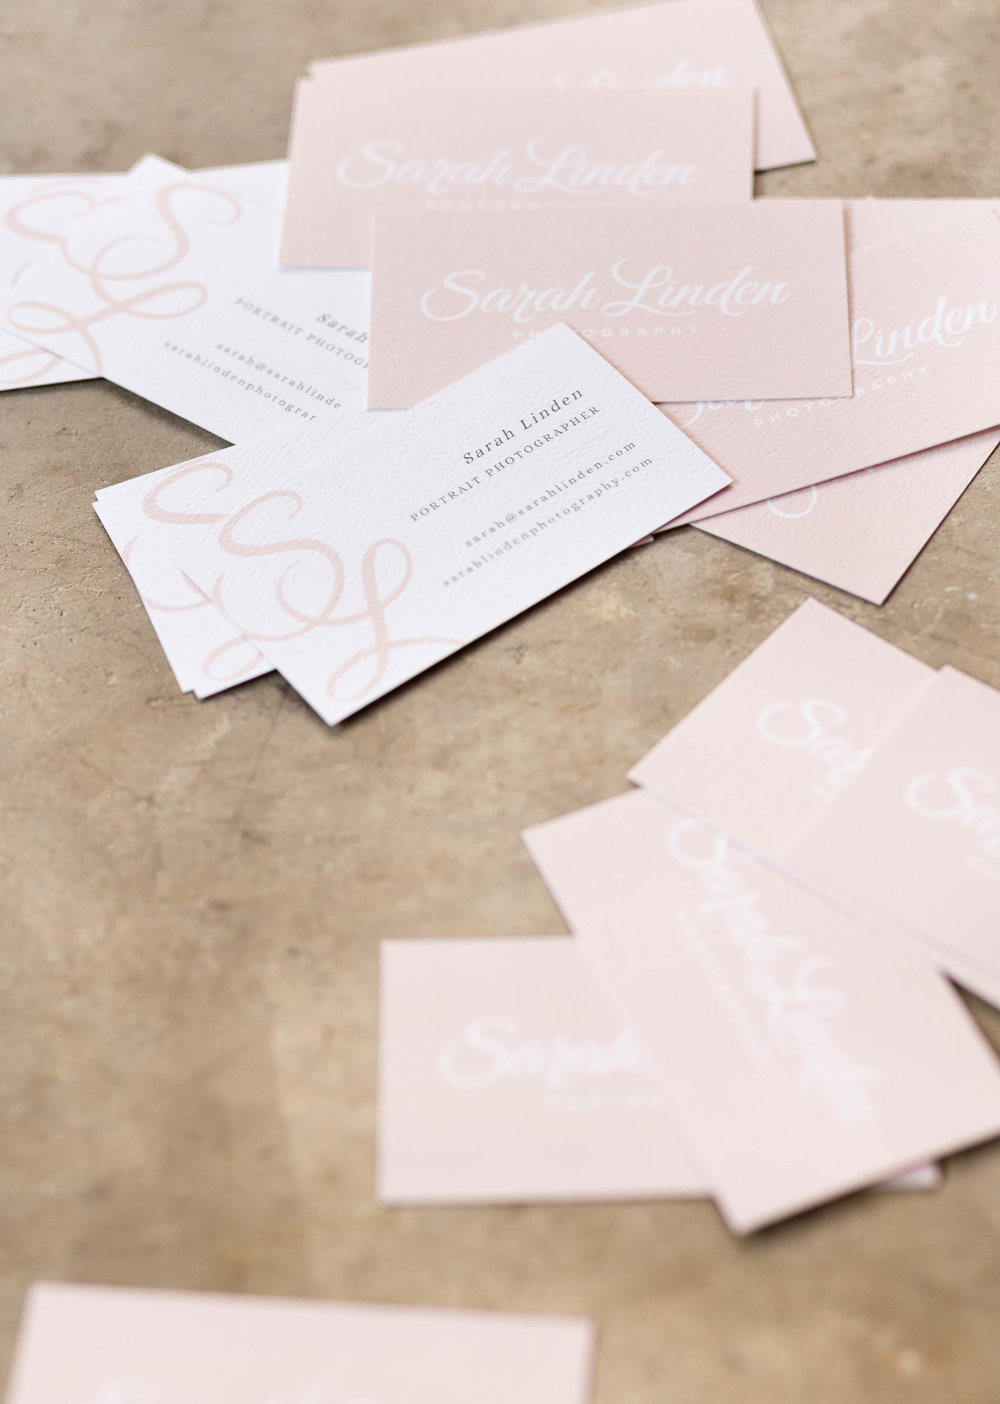 sarah-linden-photography-branding-stationery-businesscards